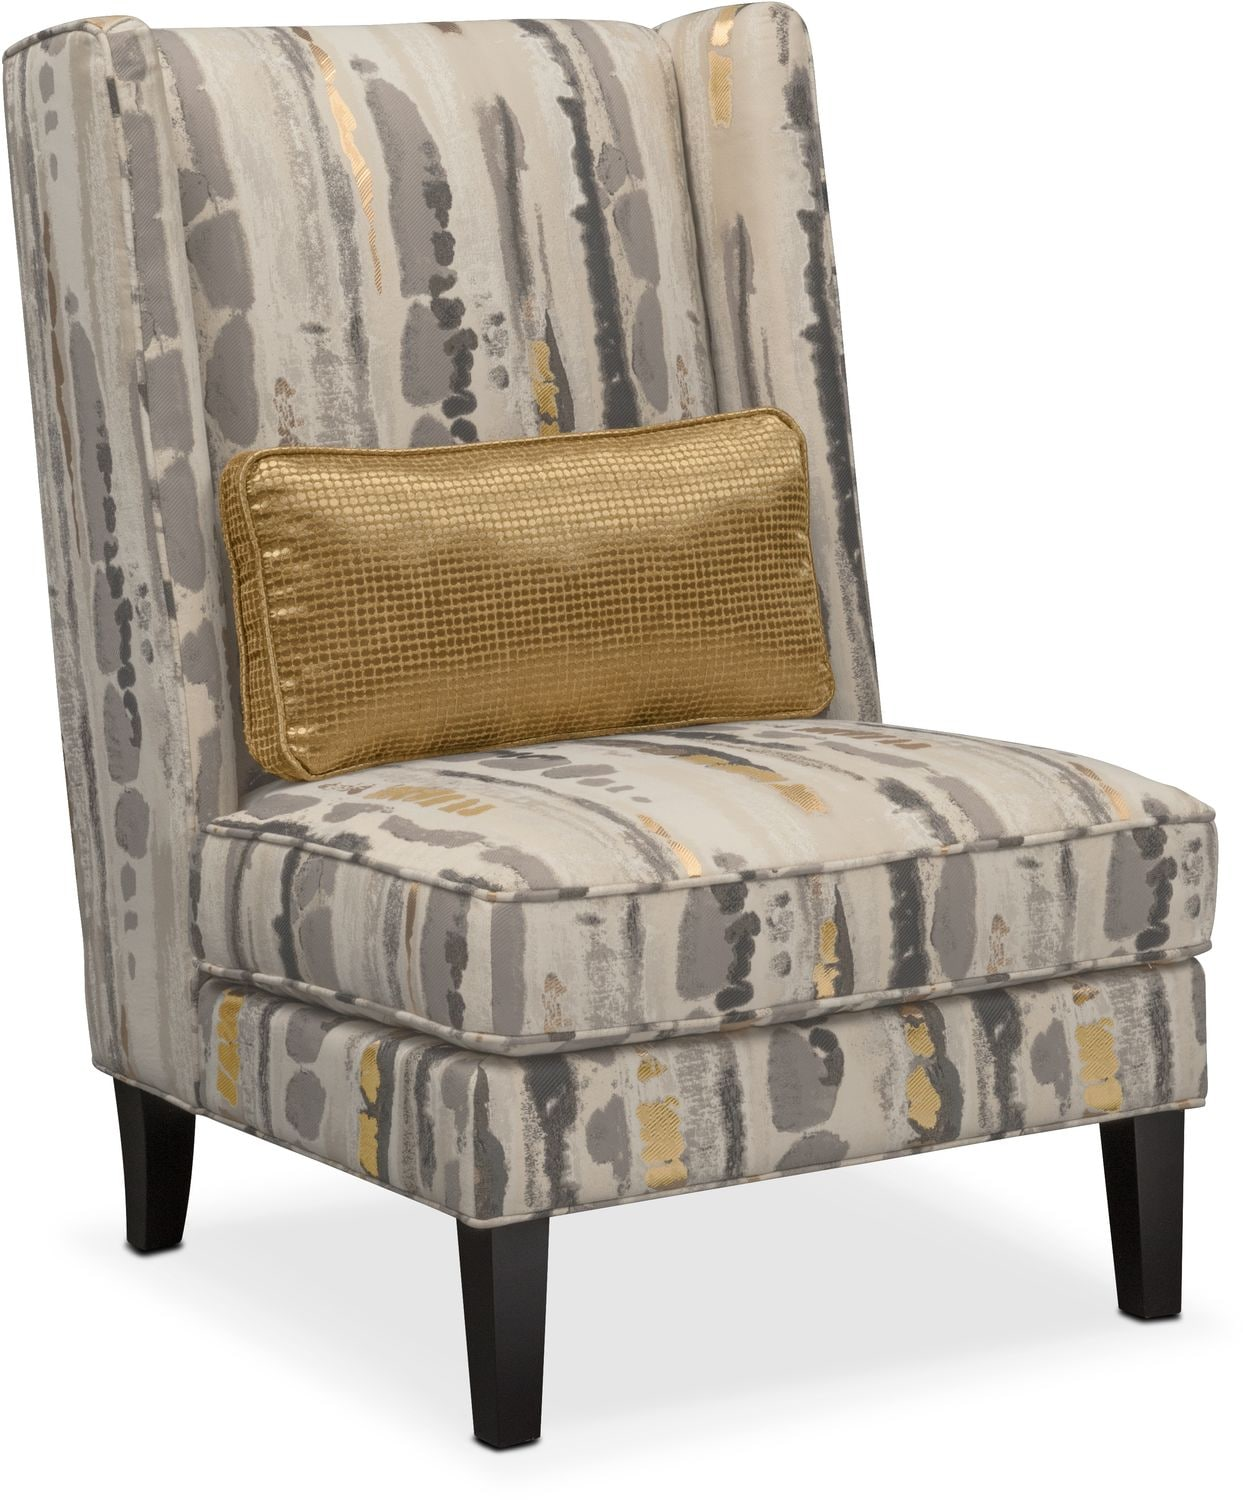 Living Room Furniture - Limelight Accent Chair